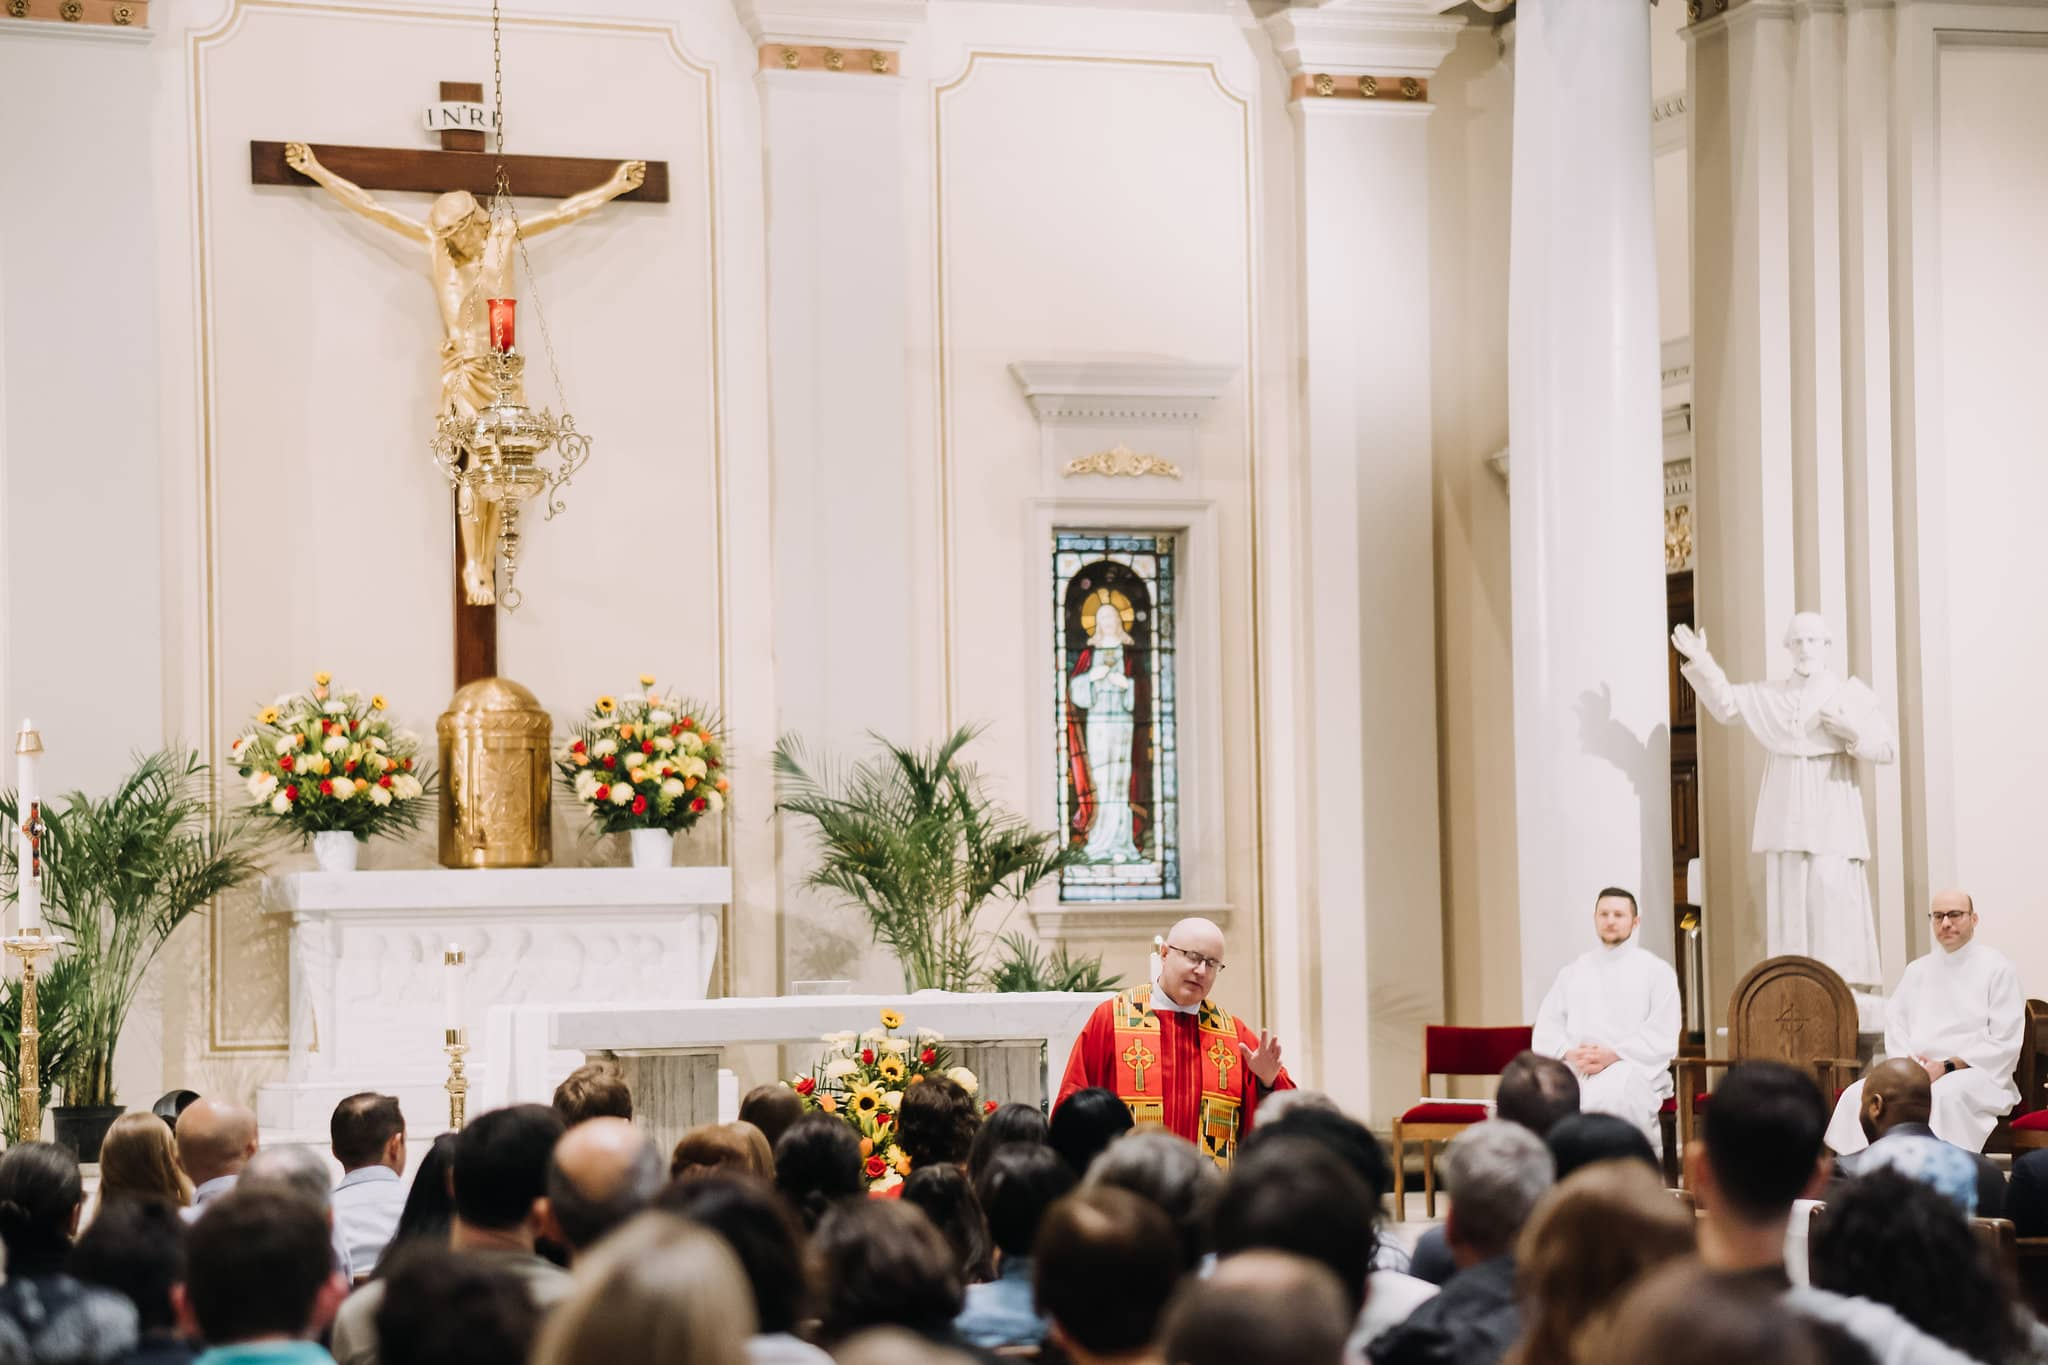 packed-popular-mass-st-francis-de-sales-church-new-york-city.jpg